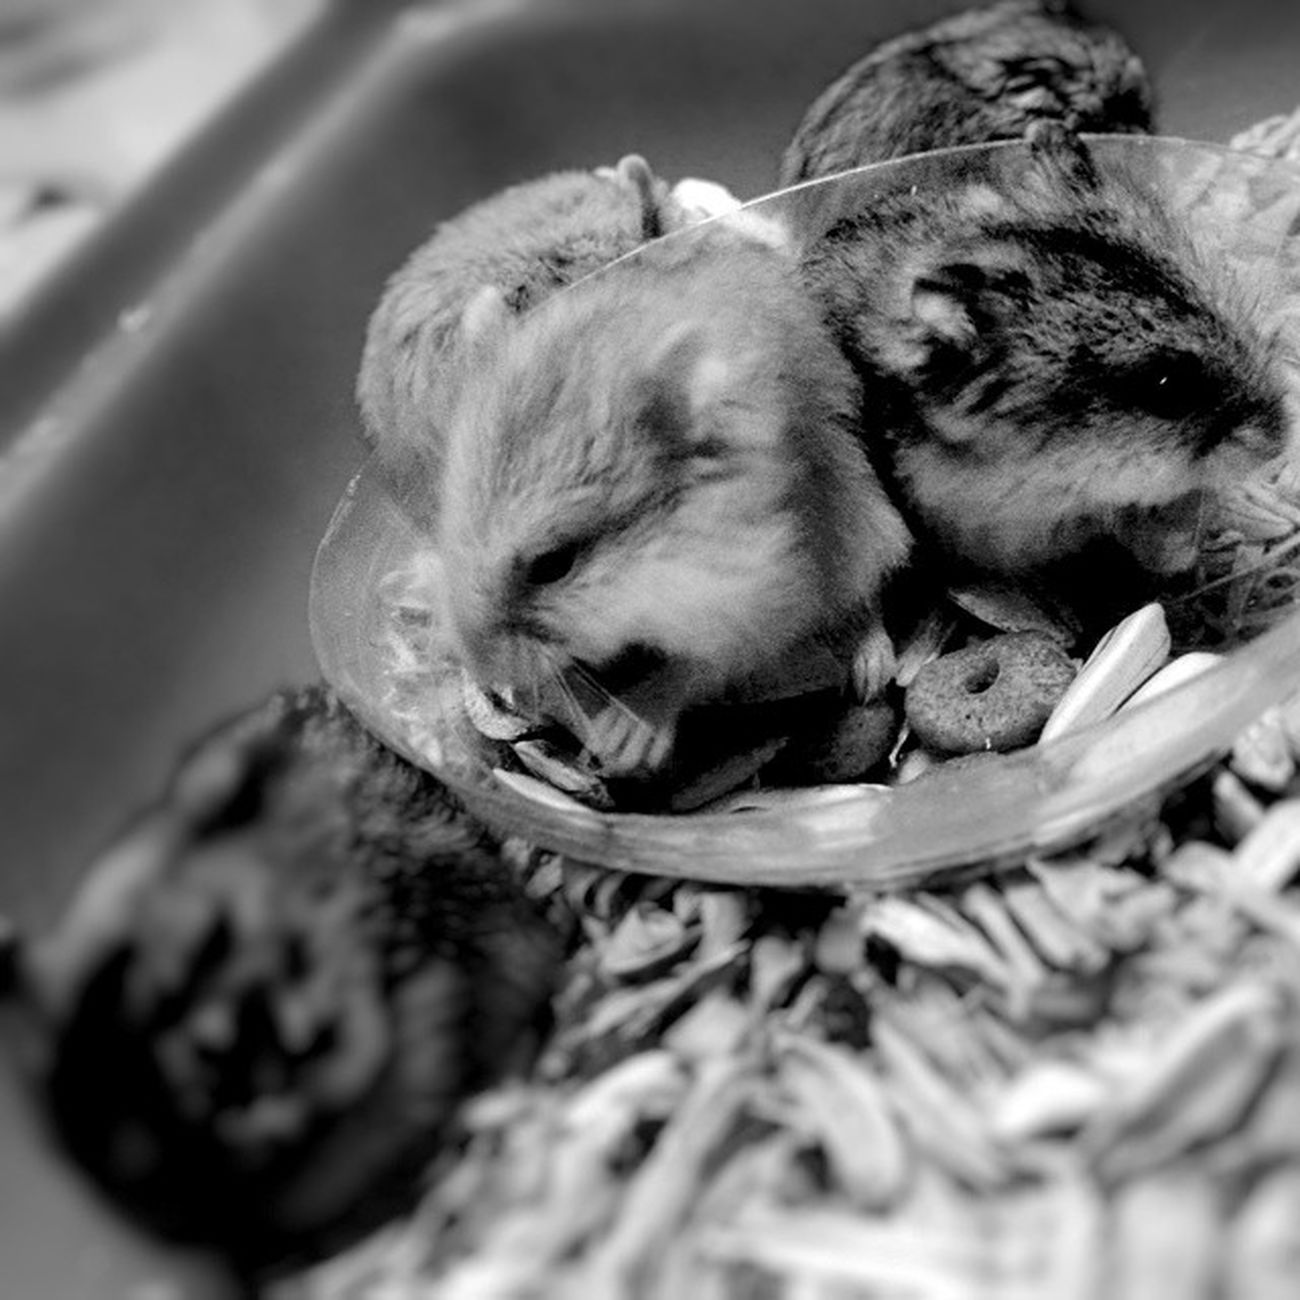 Red eye. Black eye. Morning Morningactivity POTD Thursday breakfast seeds nuts hamster hamsters babyhamsters babyanimals pet fluffy blackandwhite blackandwhitephotography colorless world_bnw bw_awards insta_bw bnw_planet ae_bnw bnw bnw_society bwstyles_gf bnw_diamond bnw_life rsa_bnw